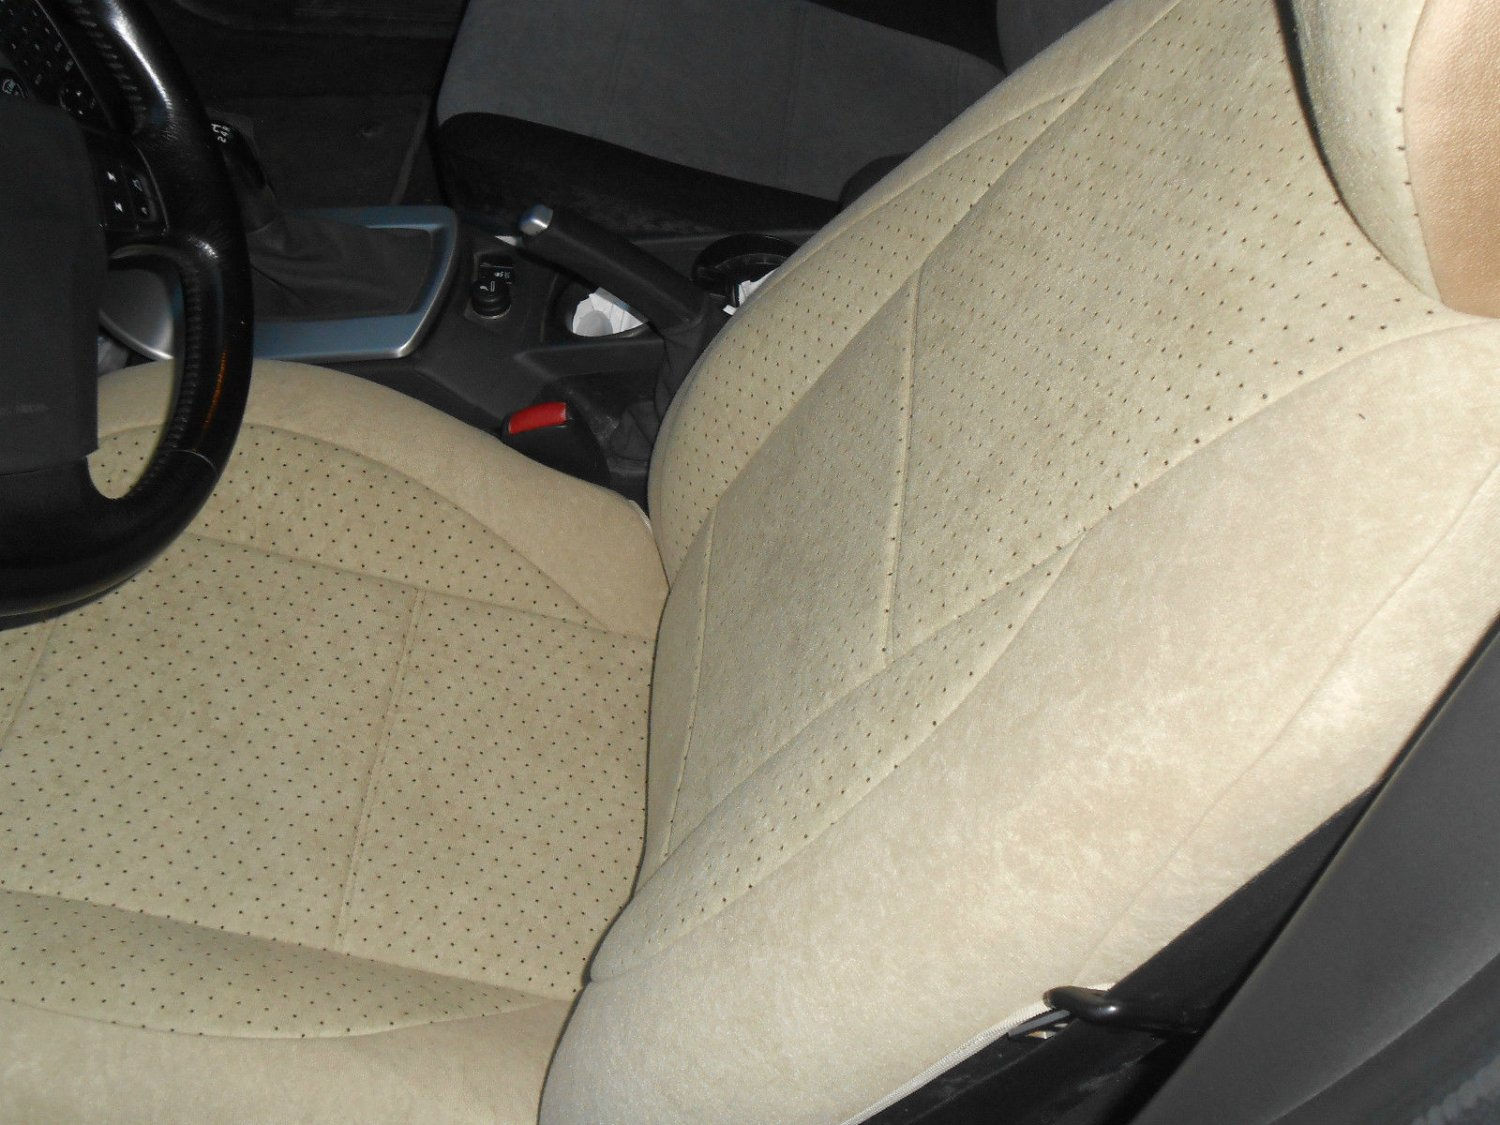 Find 2008 2012 Toyota Highlander Cargo Cover Tan Manual Tail Gate 2016 Curt T Connector Wiring Harness 56217 Prius 2010 Two Front Custom Velour Beige Car Seat Covers